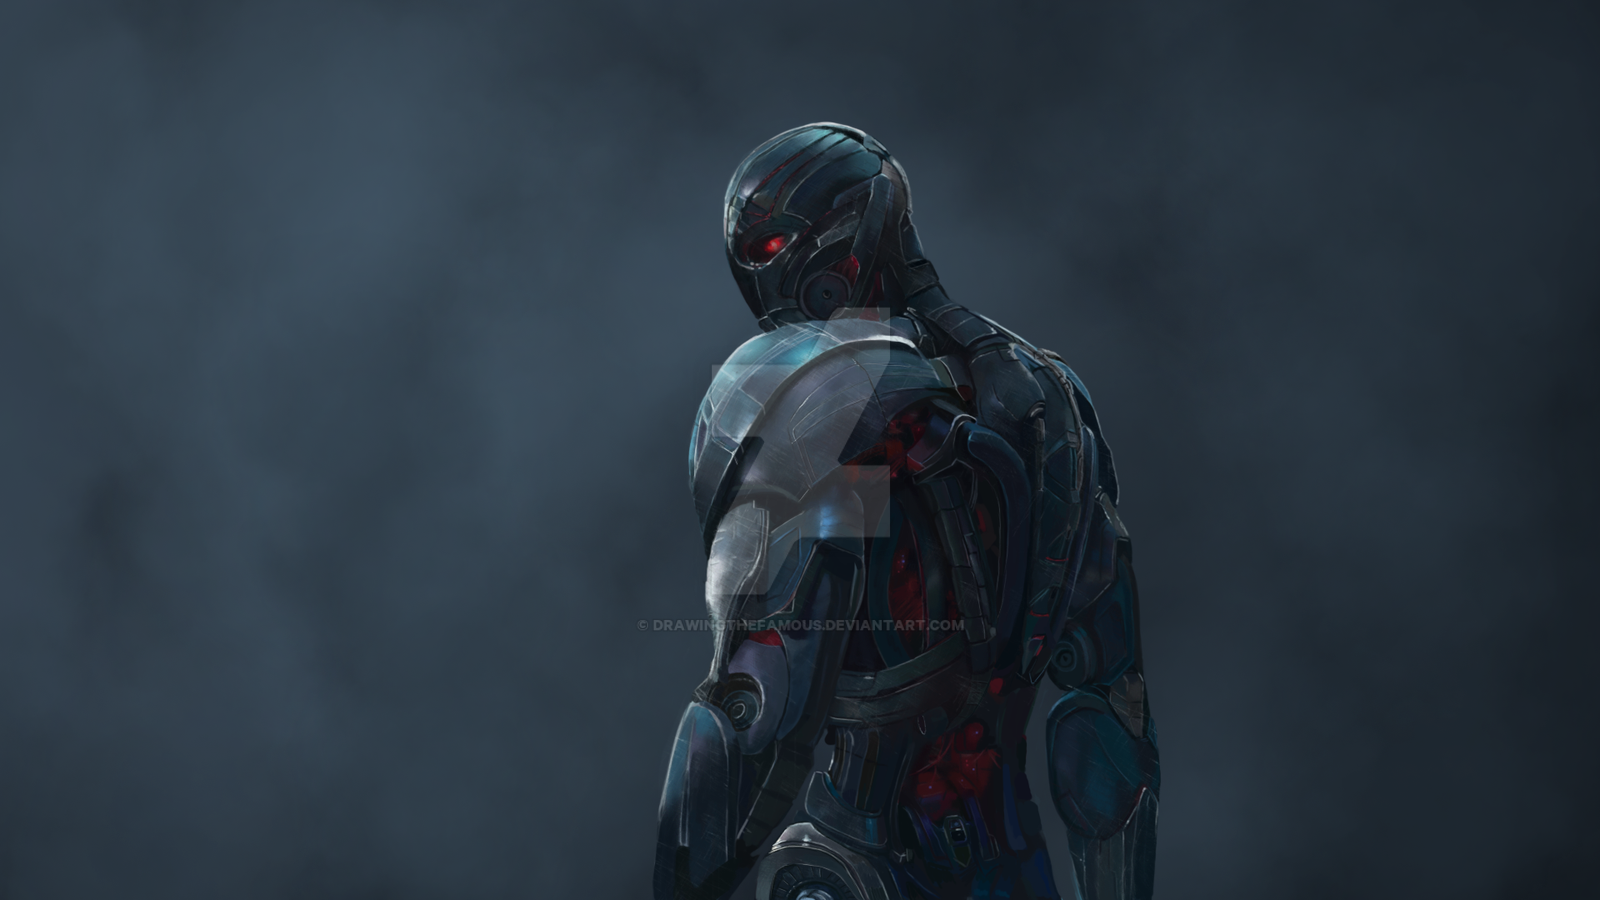 Avengers Age Of Ultron By Iloegbunam On Deviantart: Avengers Age Of Ultron